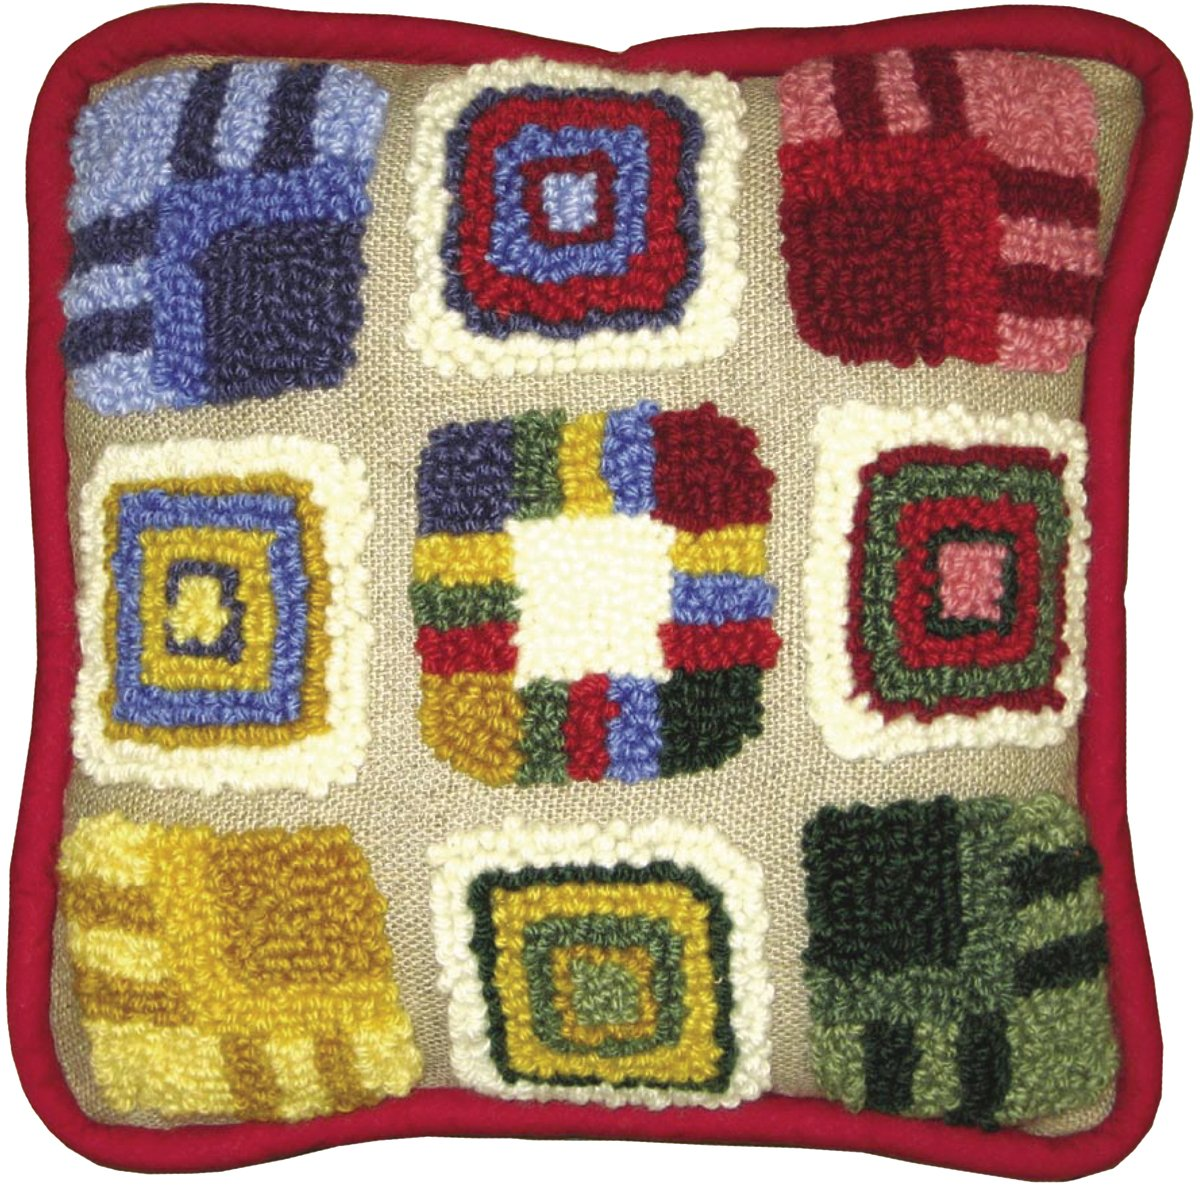 MCG Textiles Patchwork Pillow Rug Yarn Punch Needle Kit by MCG Textiles